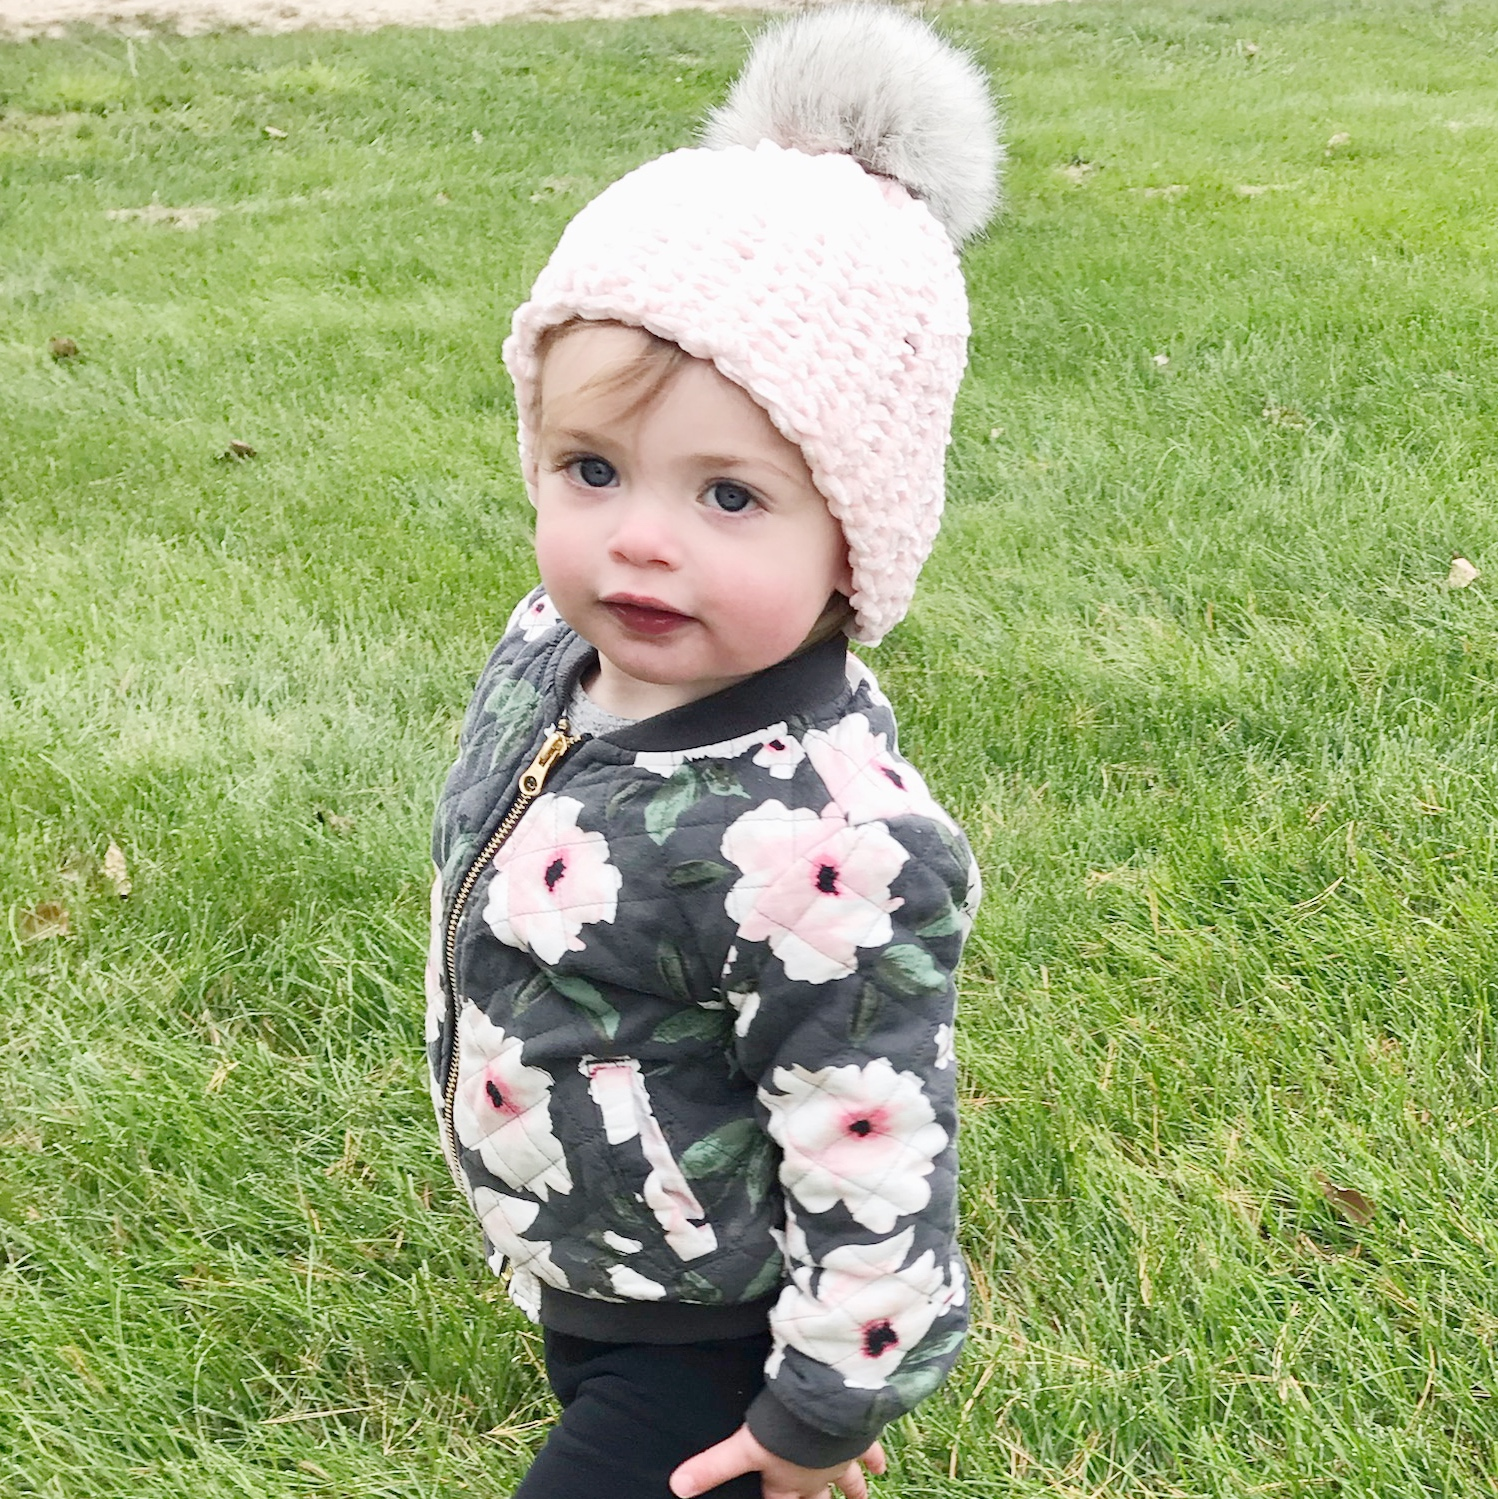 The Lucy Beanie was named after this little cutie, my niece!